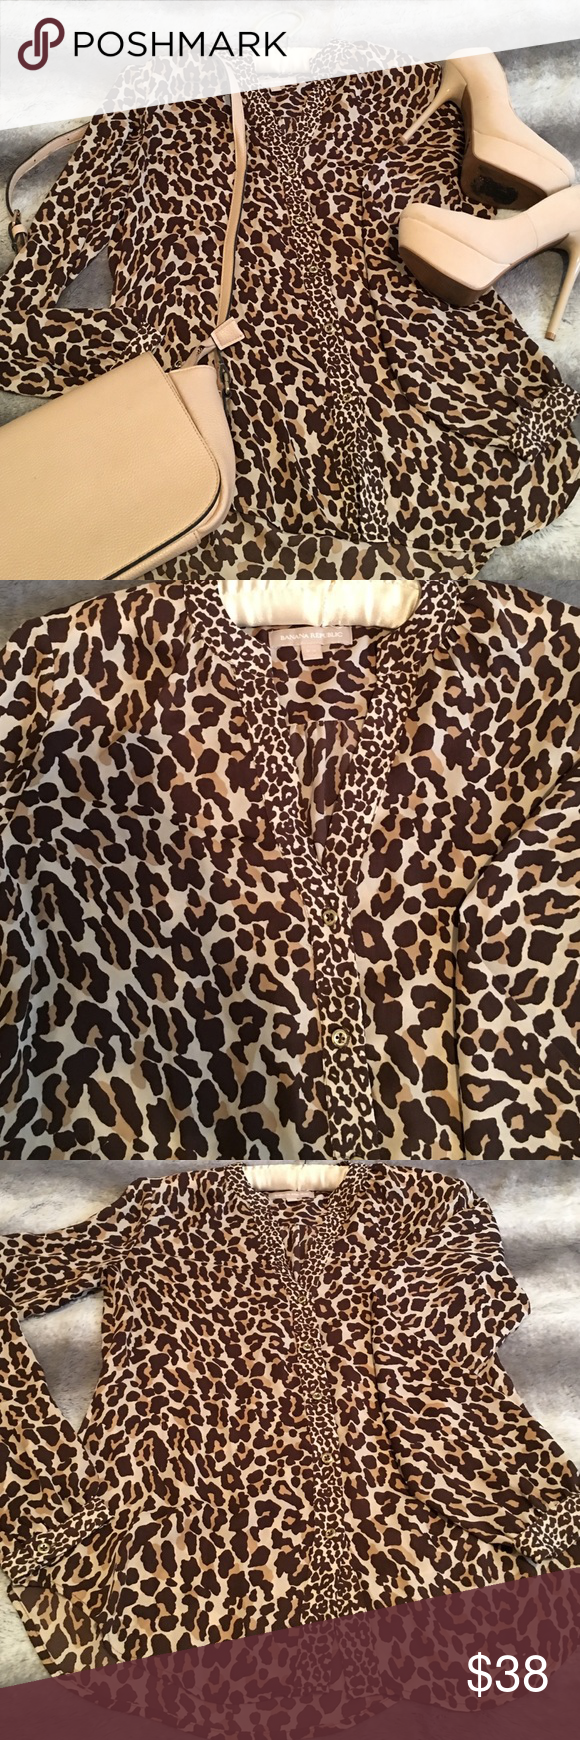 Banana Republic leopard print blouse Beautiful new Banana Republic leopard print blouse. Looks cute for the office or after. Banana Republic Tops Blouses